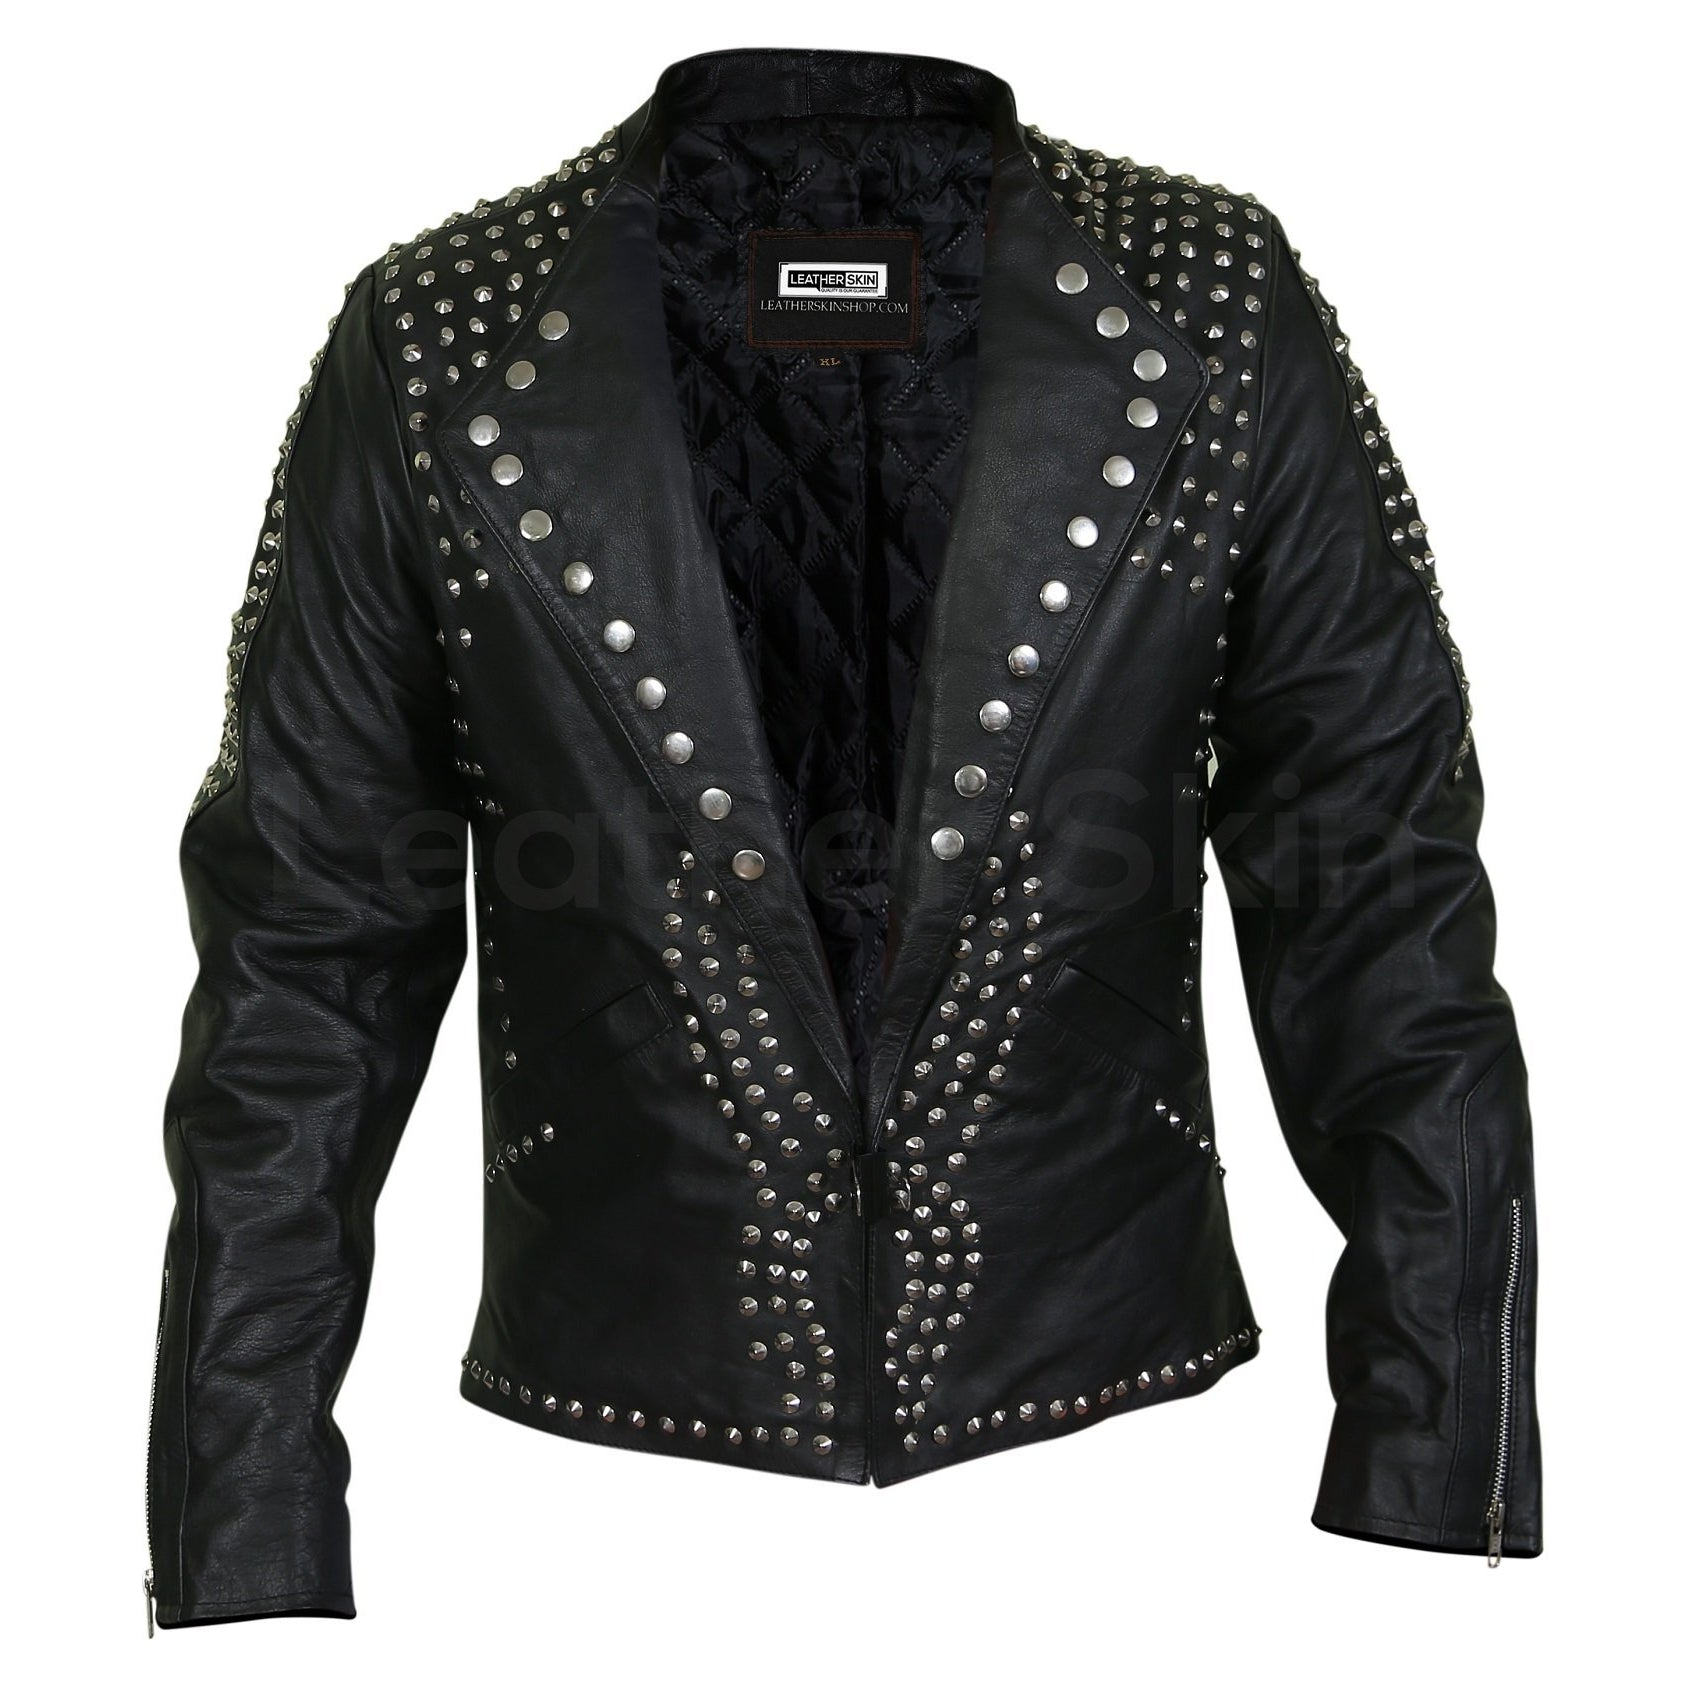 Men Black Jacket with Cone Spikes Stud on Shoulder